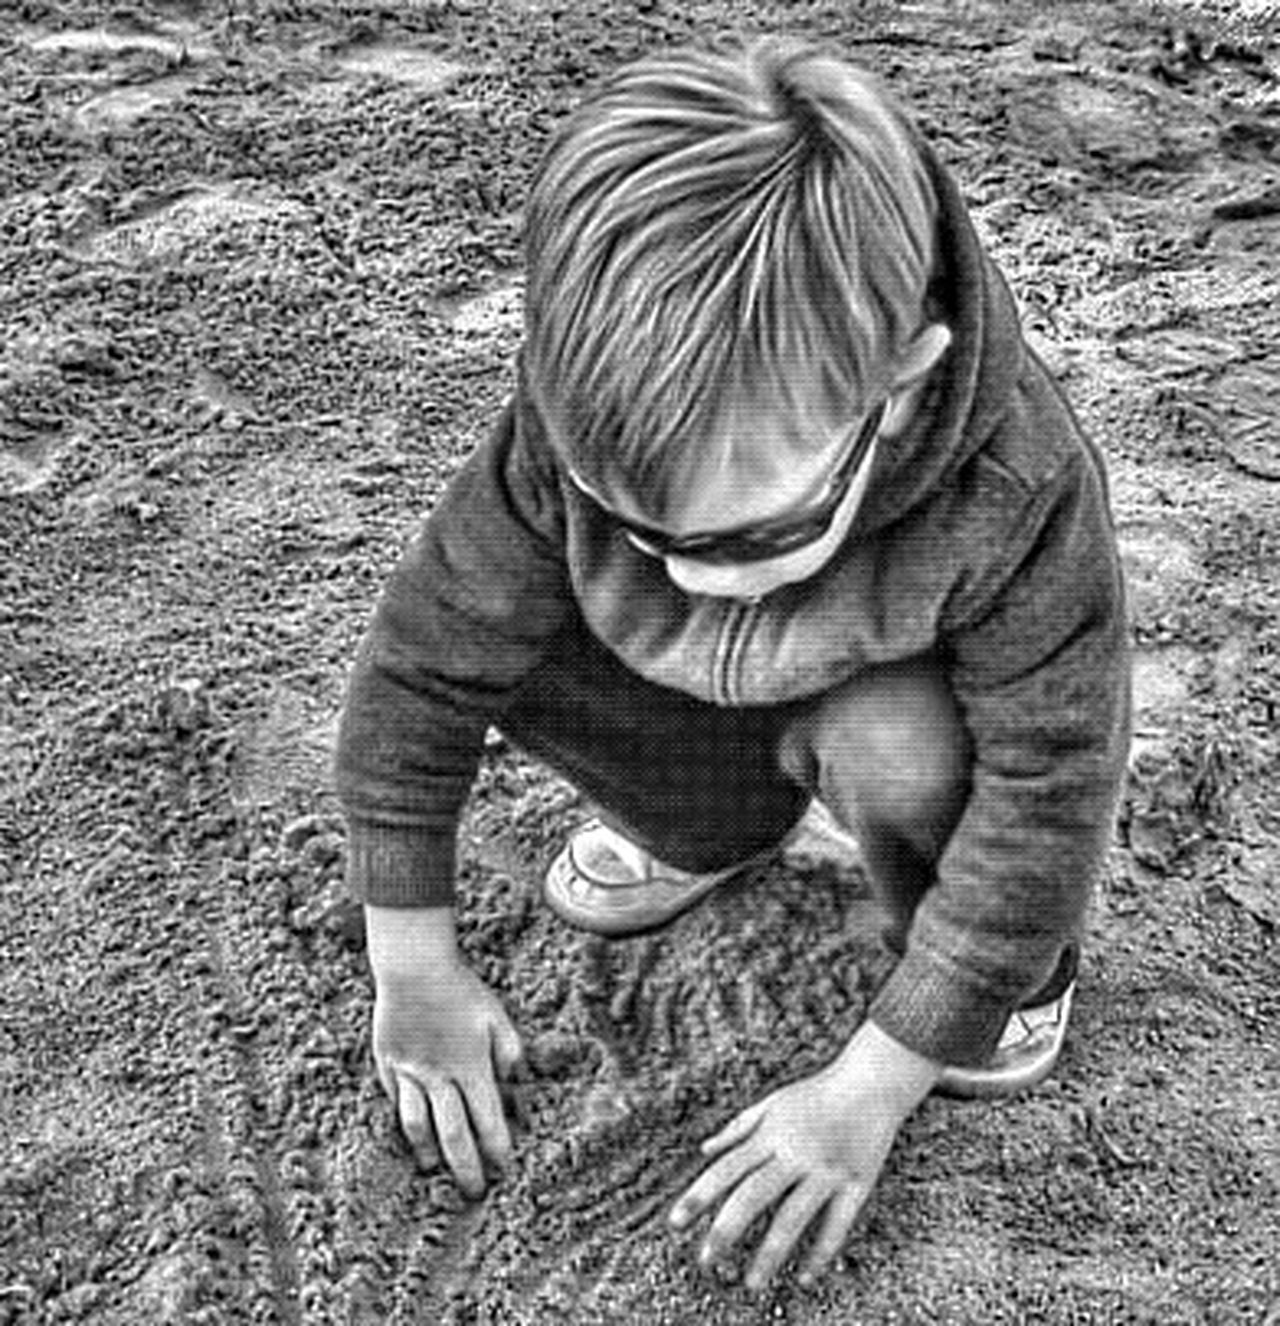 Boy playng in sand with his hands Black & White Editorialphotographer Eye4black&white  People Photography Taking Pictures Black And White Collection  Blackandwhitephotography Black And White Photography Blackandwhite Photography Black&white Black And White Blackandwhite Child Childhood Kid Kids Being Kids Boy Kids Having Fun Kids Playing Childhood Memories Outside Sand Playing Kids Boys Will Be Boys